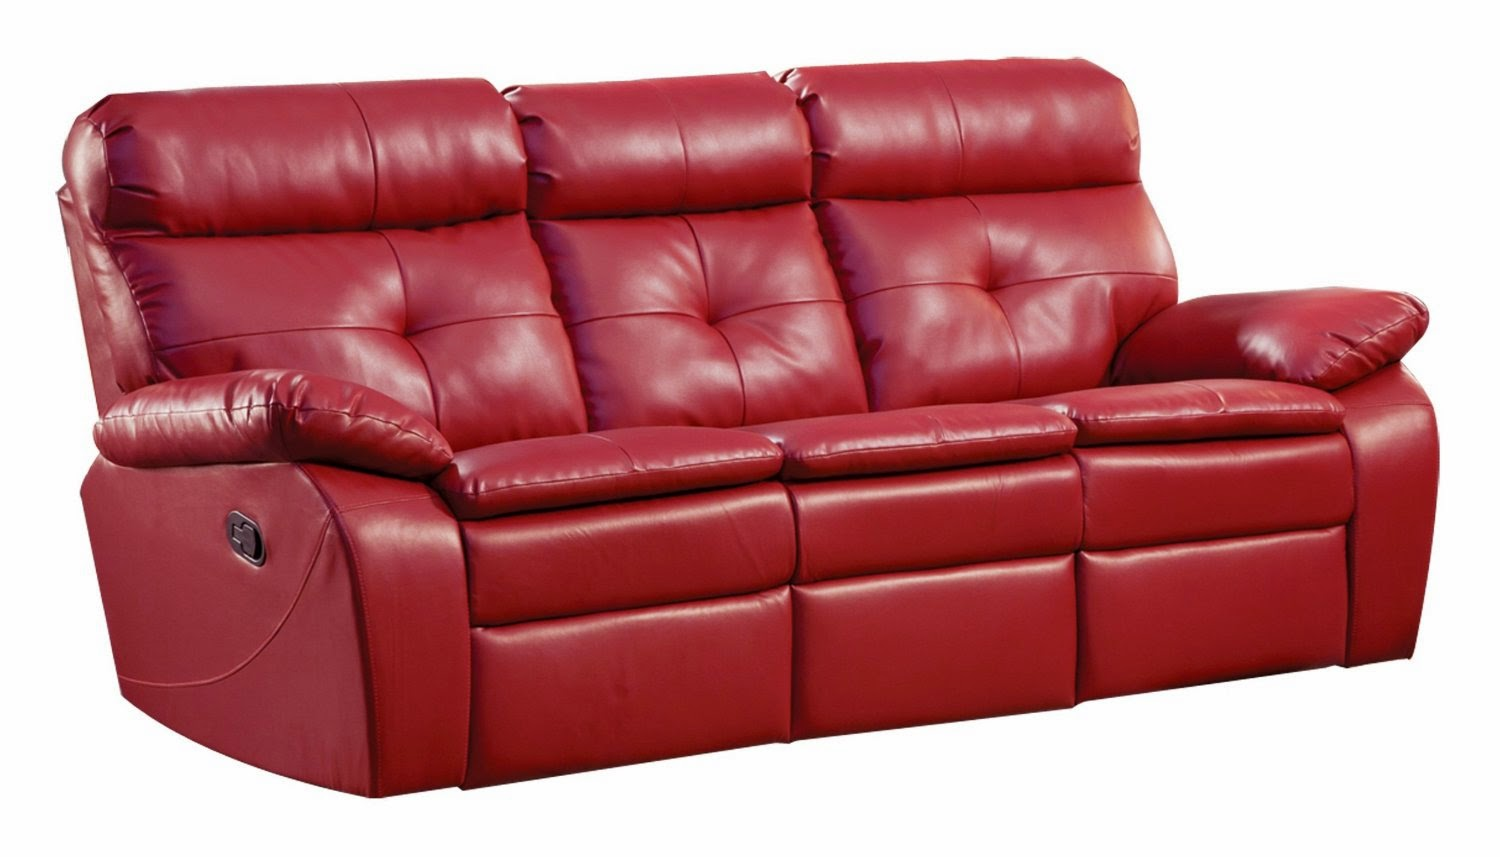 The Best Reclining Sofa Reviews: Red Leather Reclining